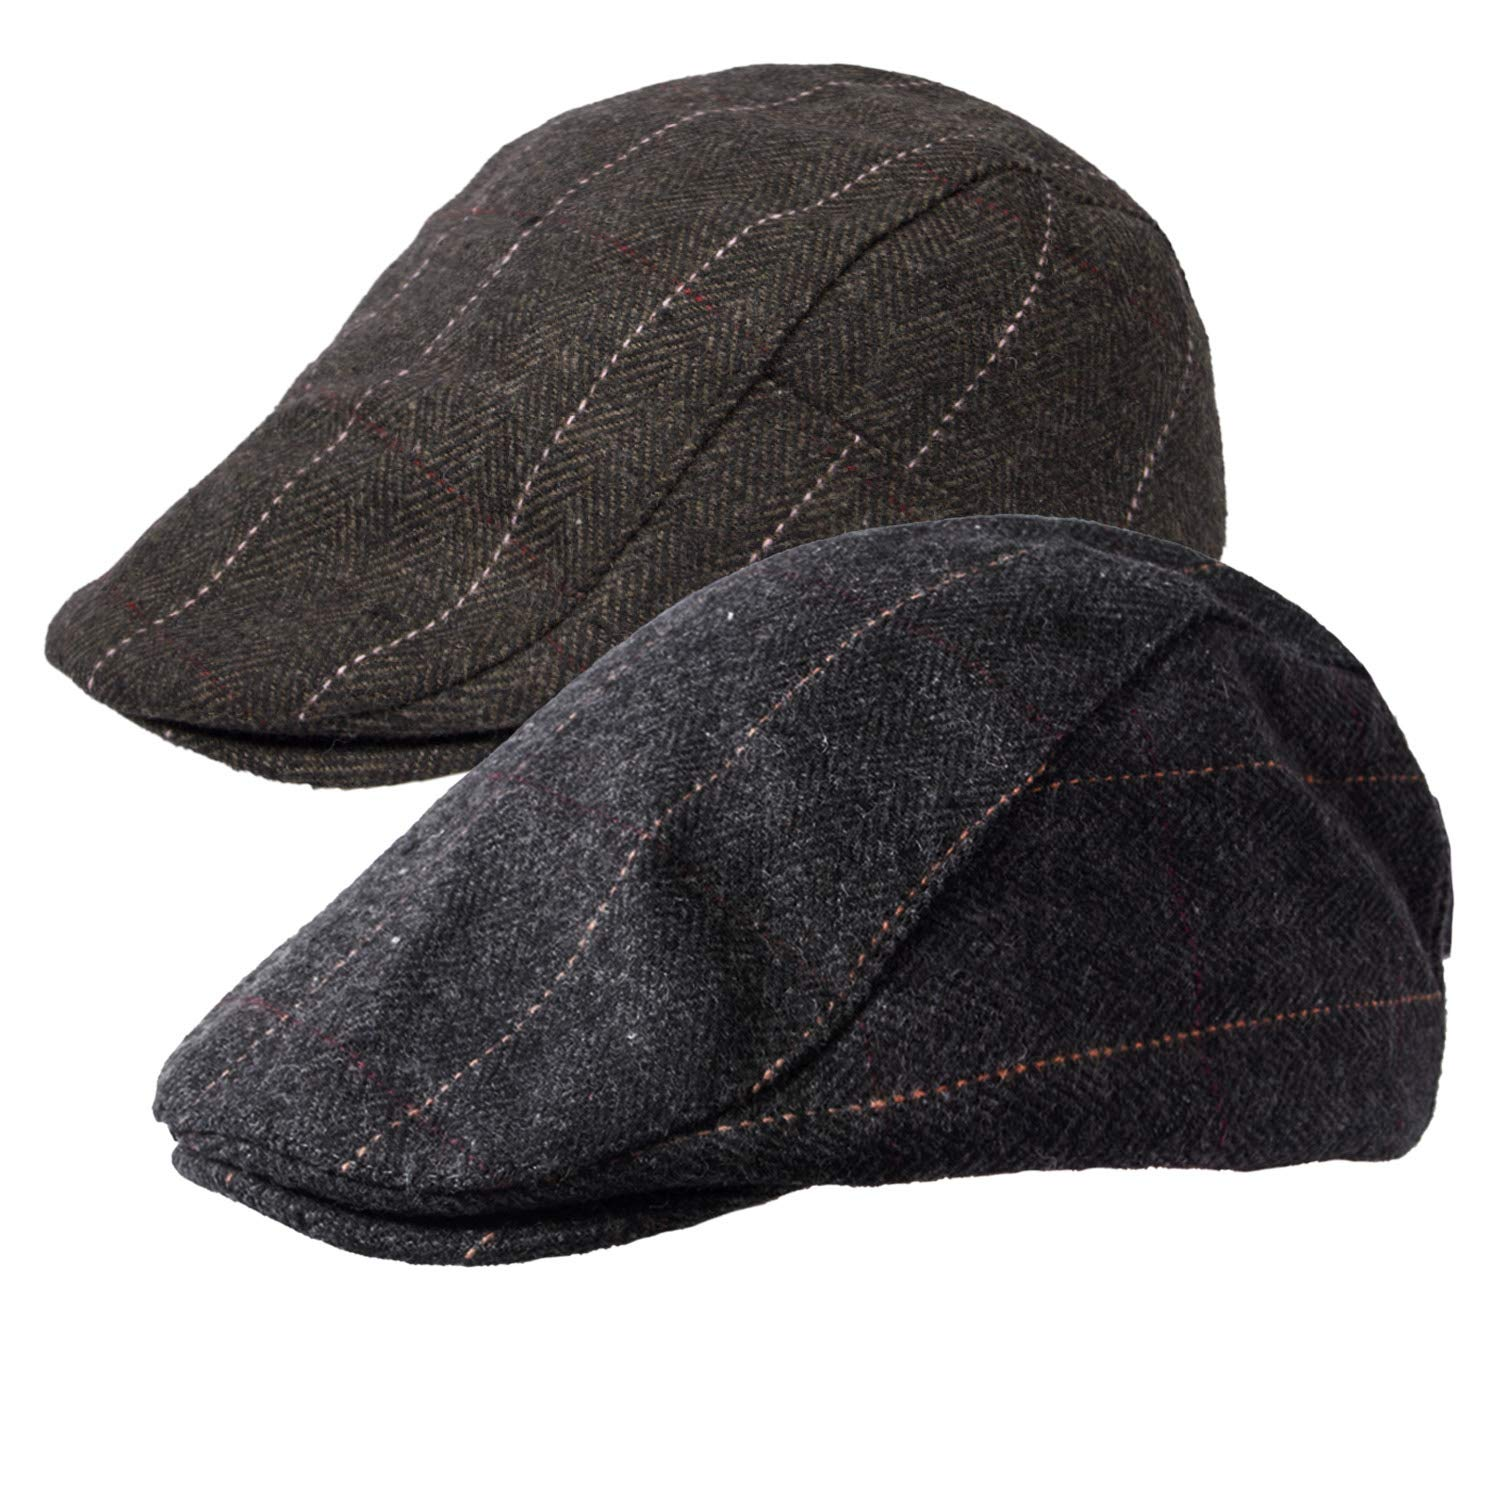 2b62de62 Senker 2 Pack Men's Classic Herringbone Tweed Wool Blend Flat Cap Ivy  Gatsby Newsboy Cabbie Driving